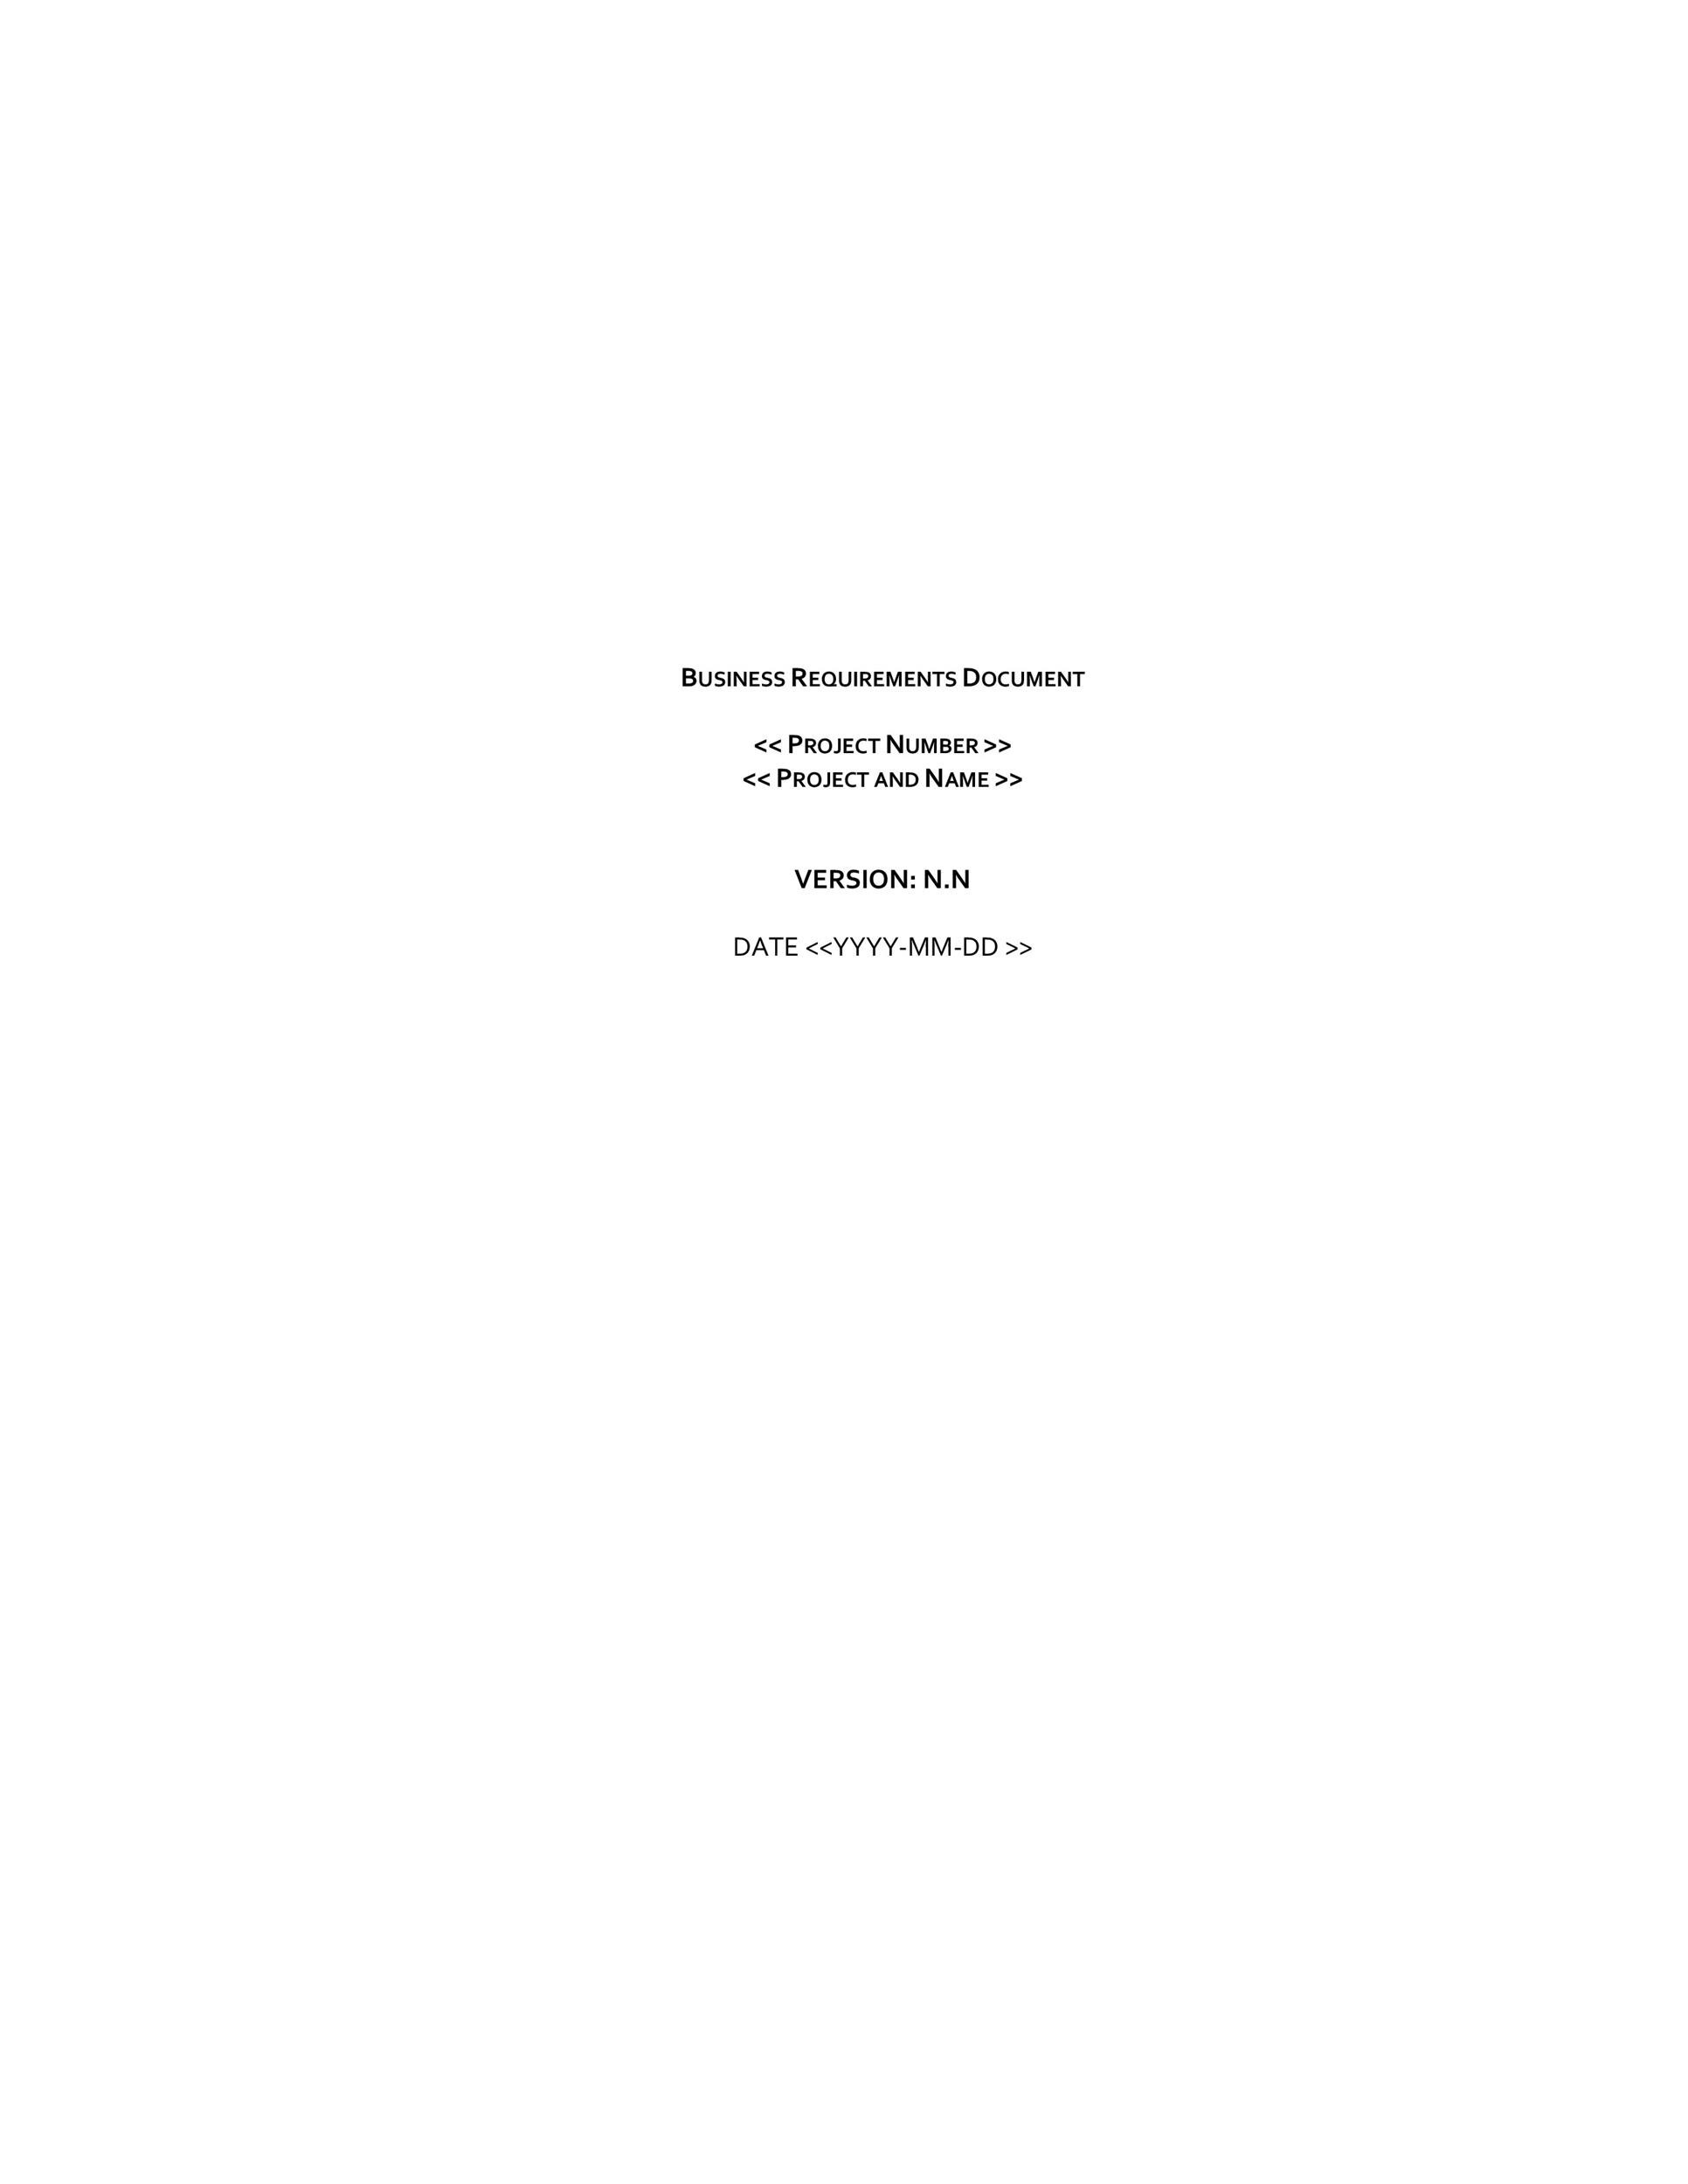 Free business requirements document template 08